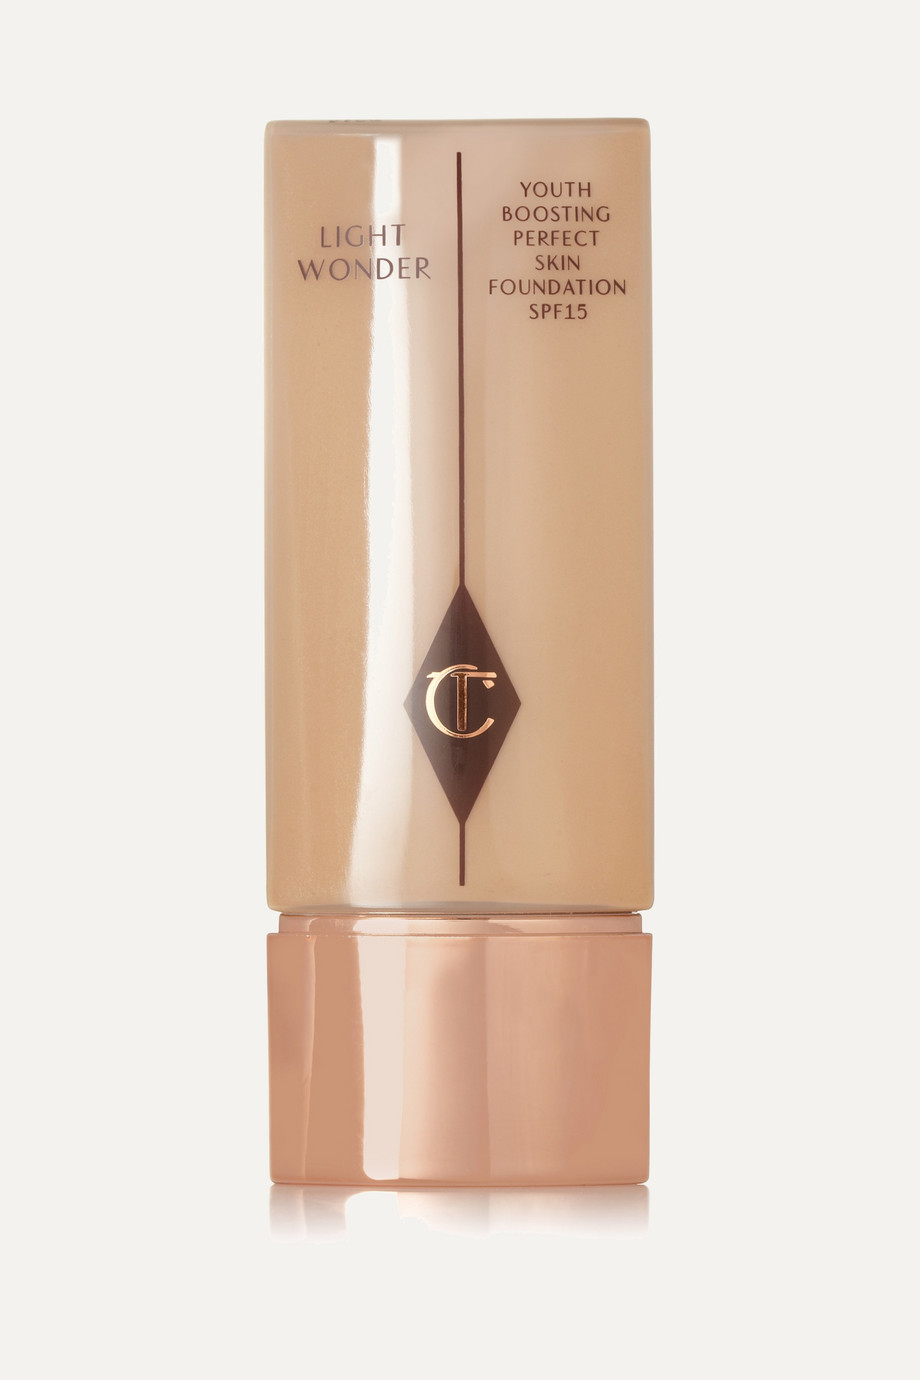 Charlotte Tilbury Light Wonder Youth-Boosting Foundation LSF 15 – 4 Fair, 40 ml – Foundation